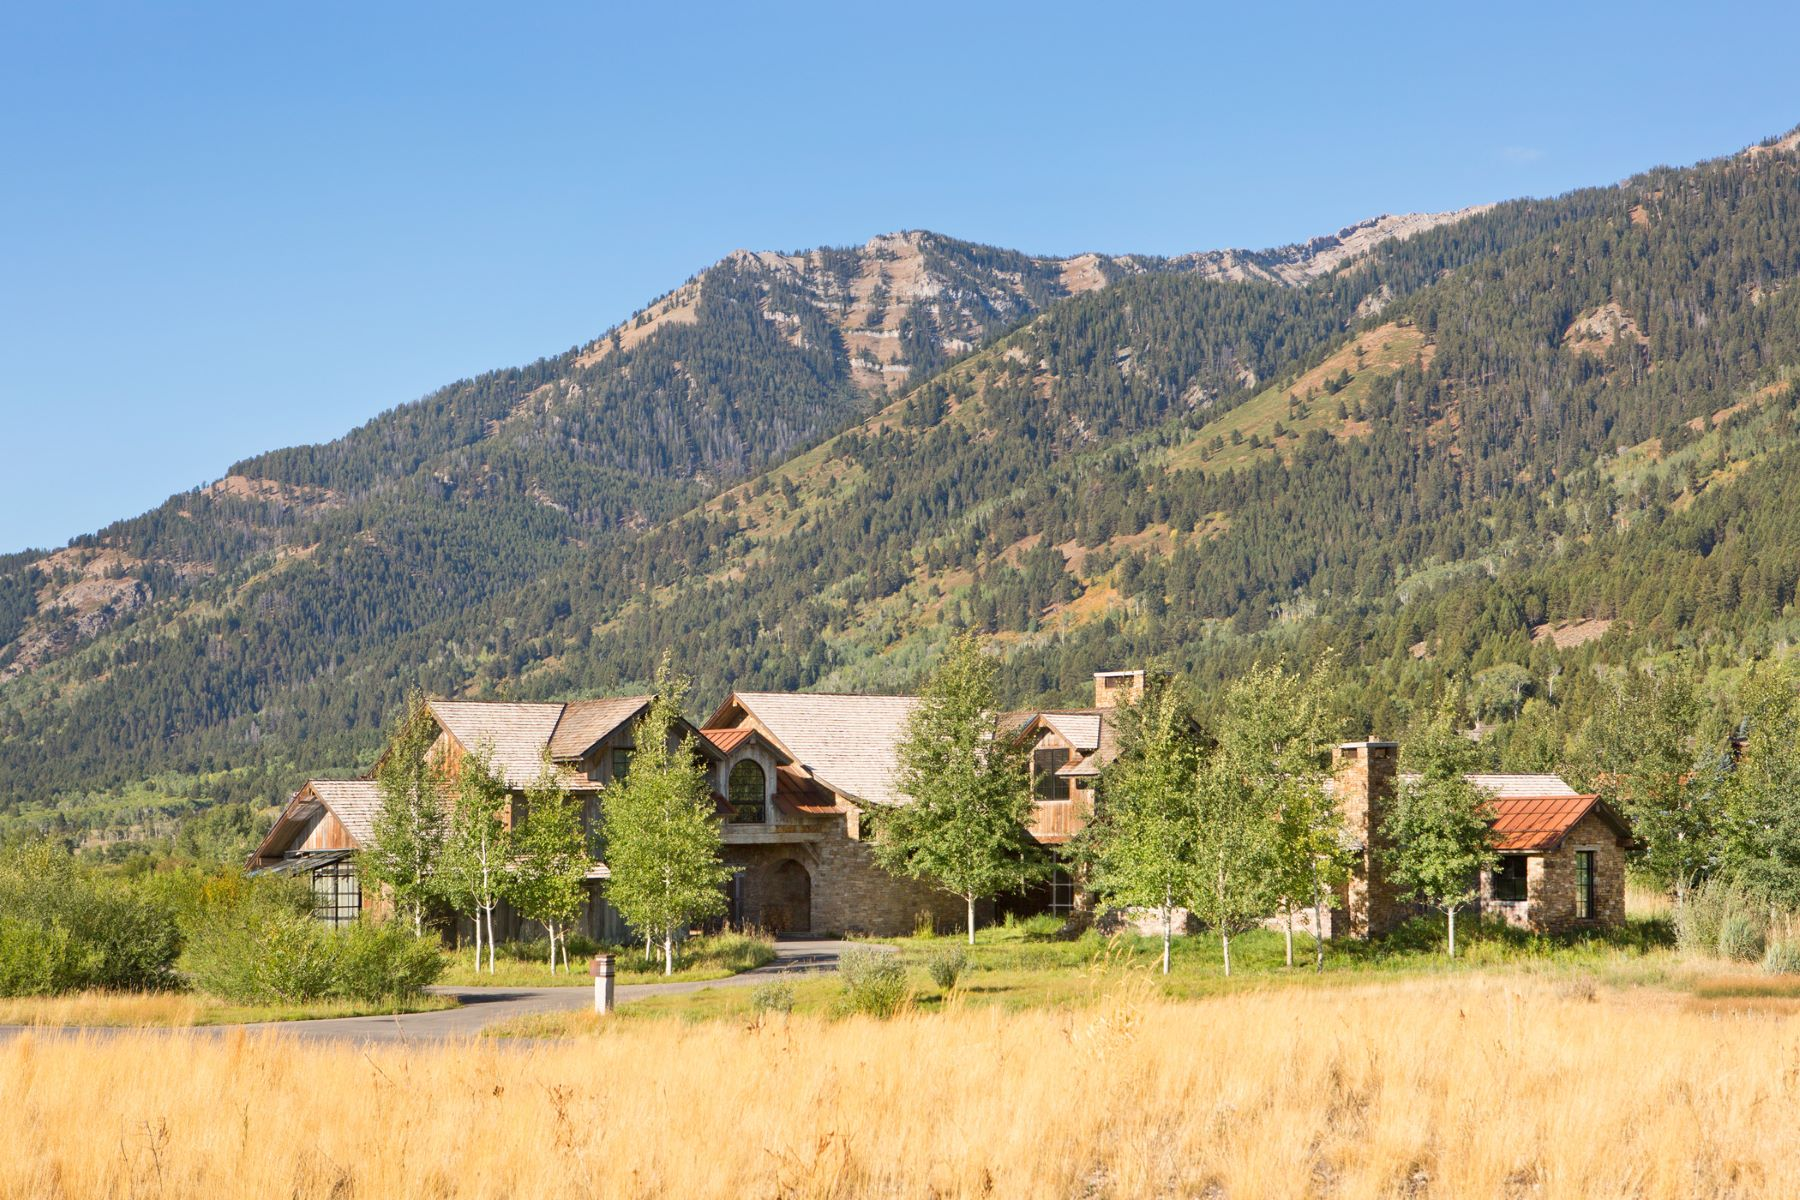 단독 가정 주택 용 매매 에 Shooting Star Home 6940 Jensen Canyon Rd Teton Village, 와이오밍, 83025 Jackson Hole, 미국